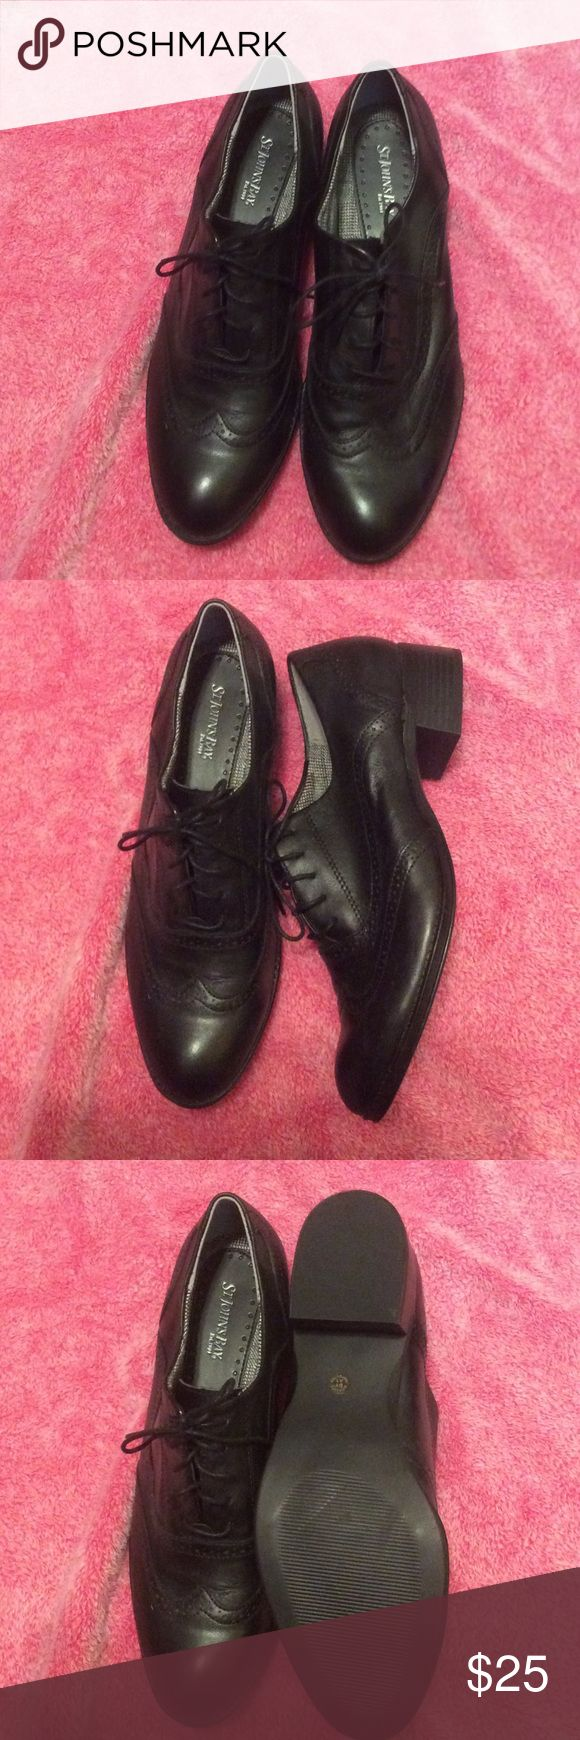 Ladies Cute Lace up Wing Tip Shoes Classy Wing Tip Ladies shoes.  Worn only in house once to try on.  Leather. St. Johns Bay Shoes